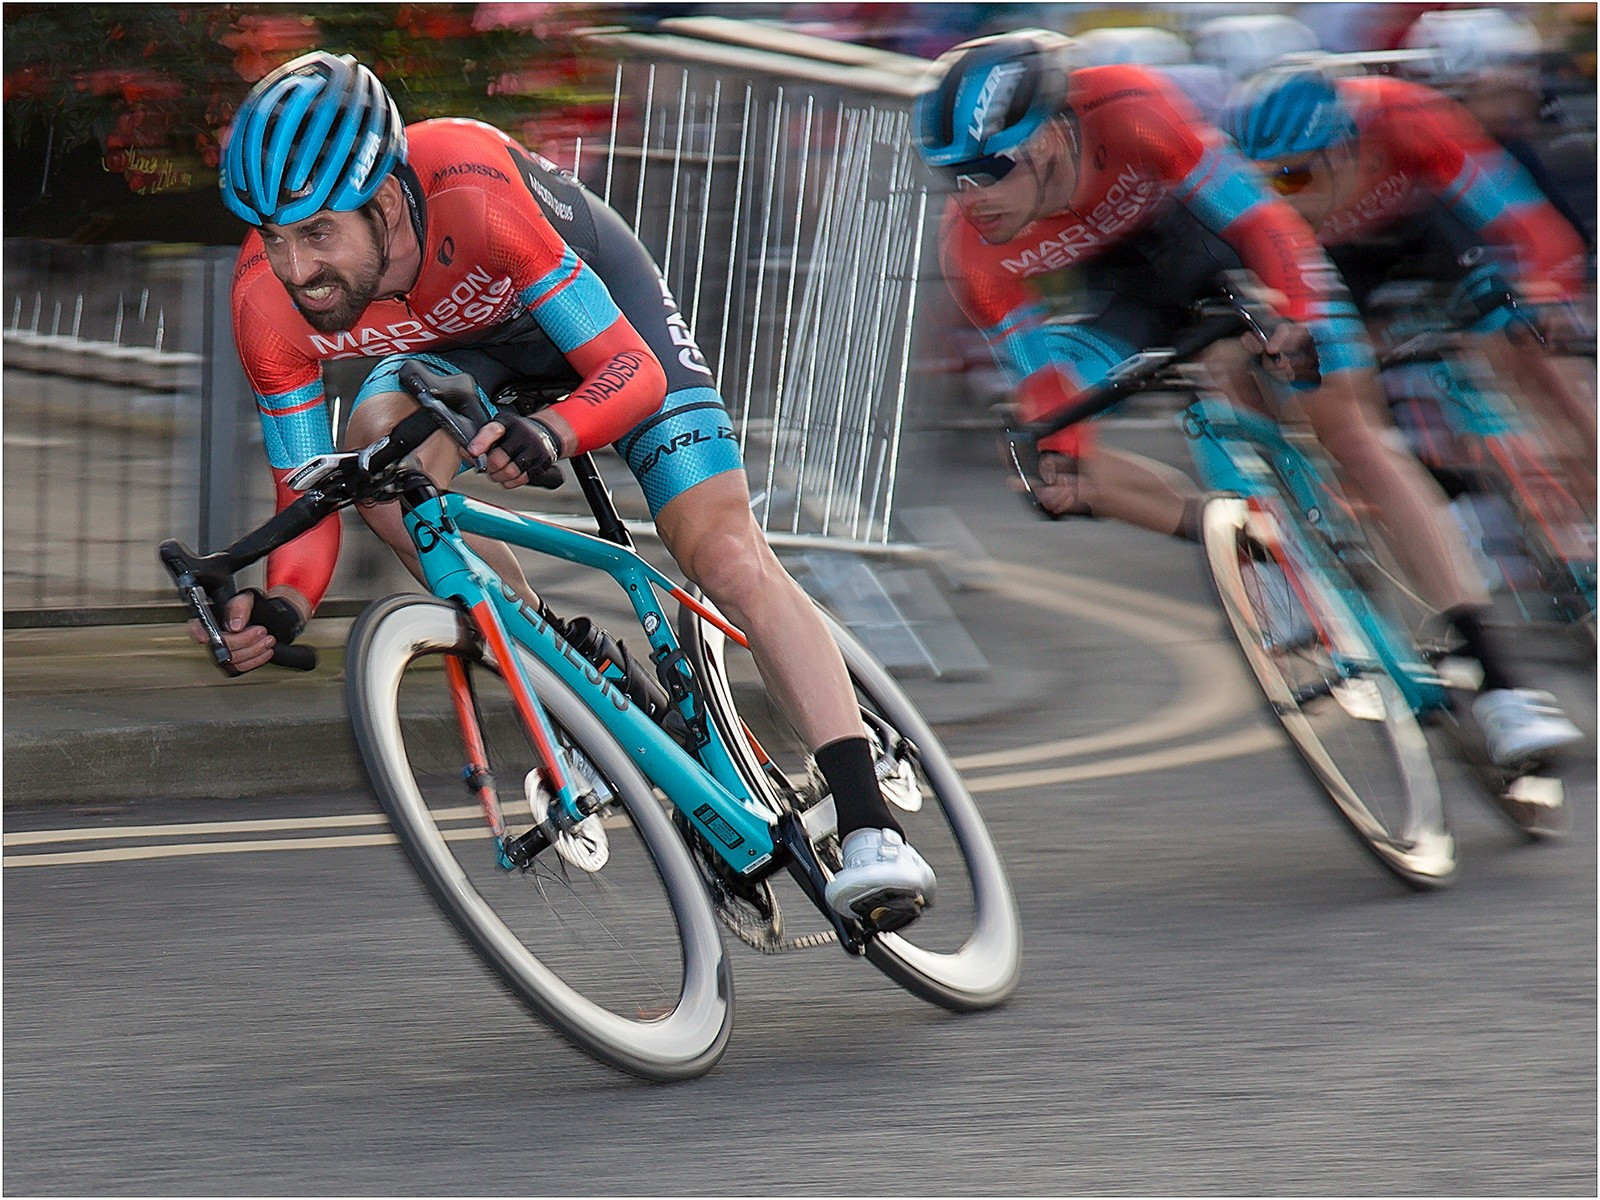 Aggression - Colne Cycling Grand Prix 2019